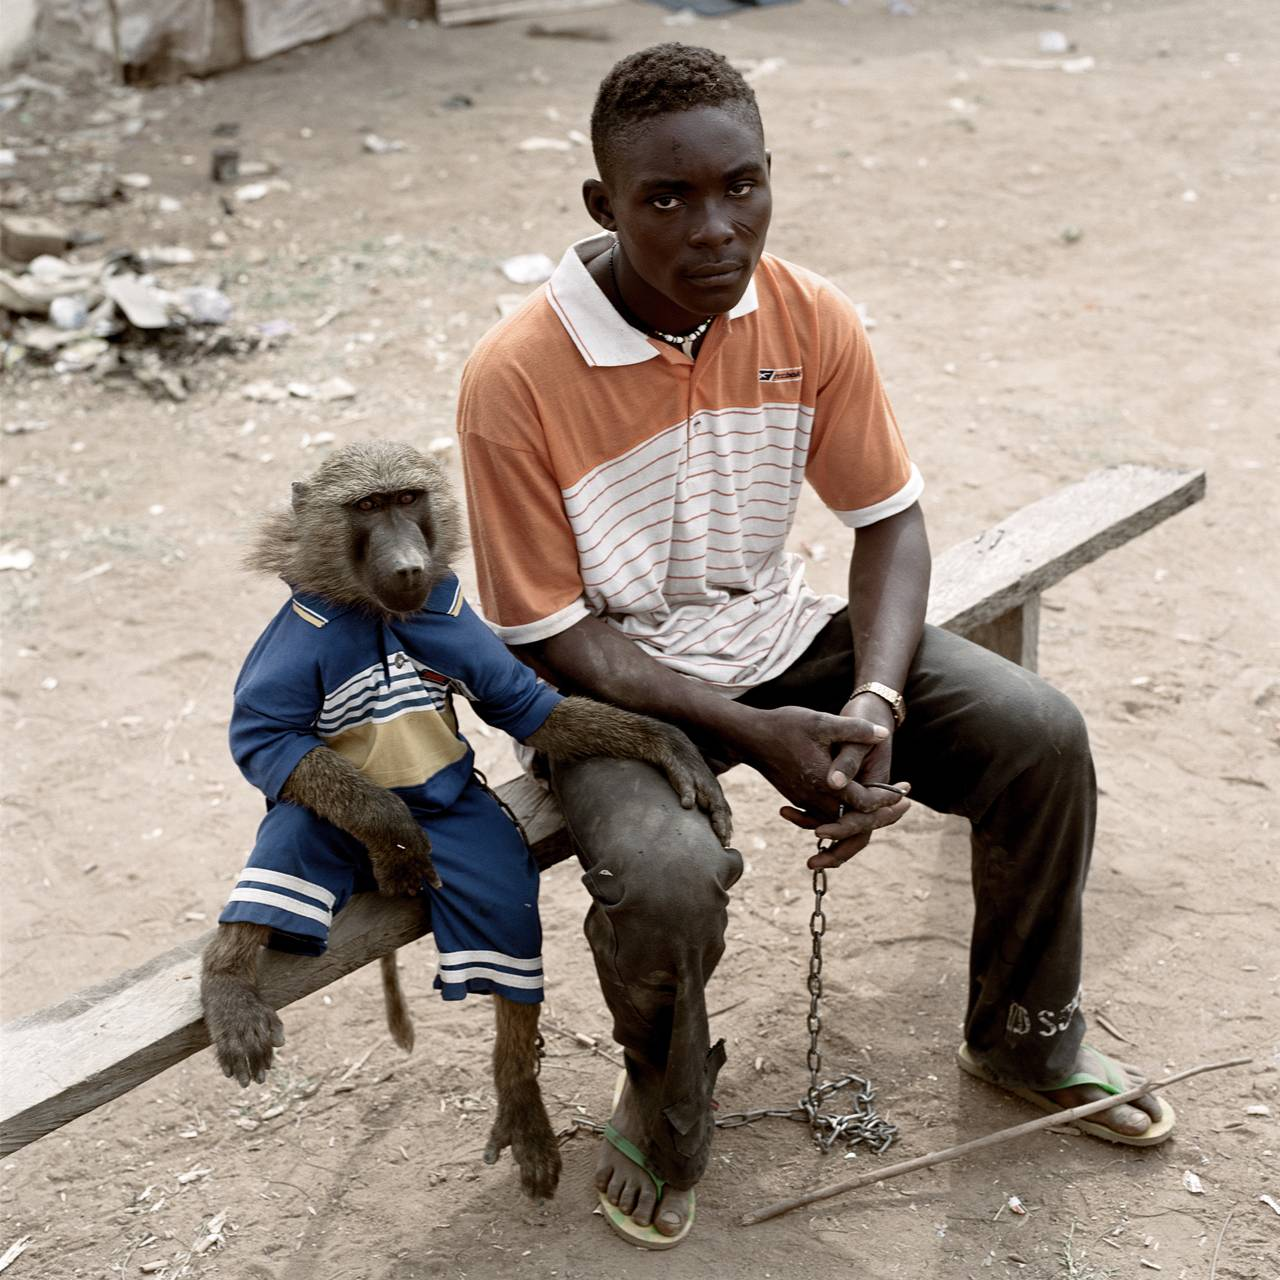 Dayaba_Usman_with_the_monkey_Clear_Nigeria_2005_plate_20_l